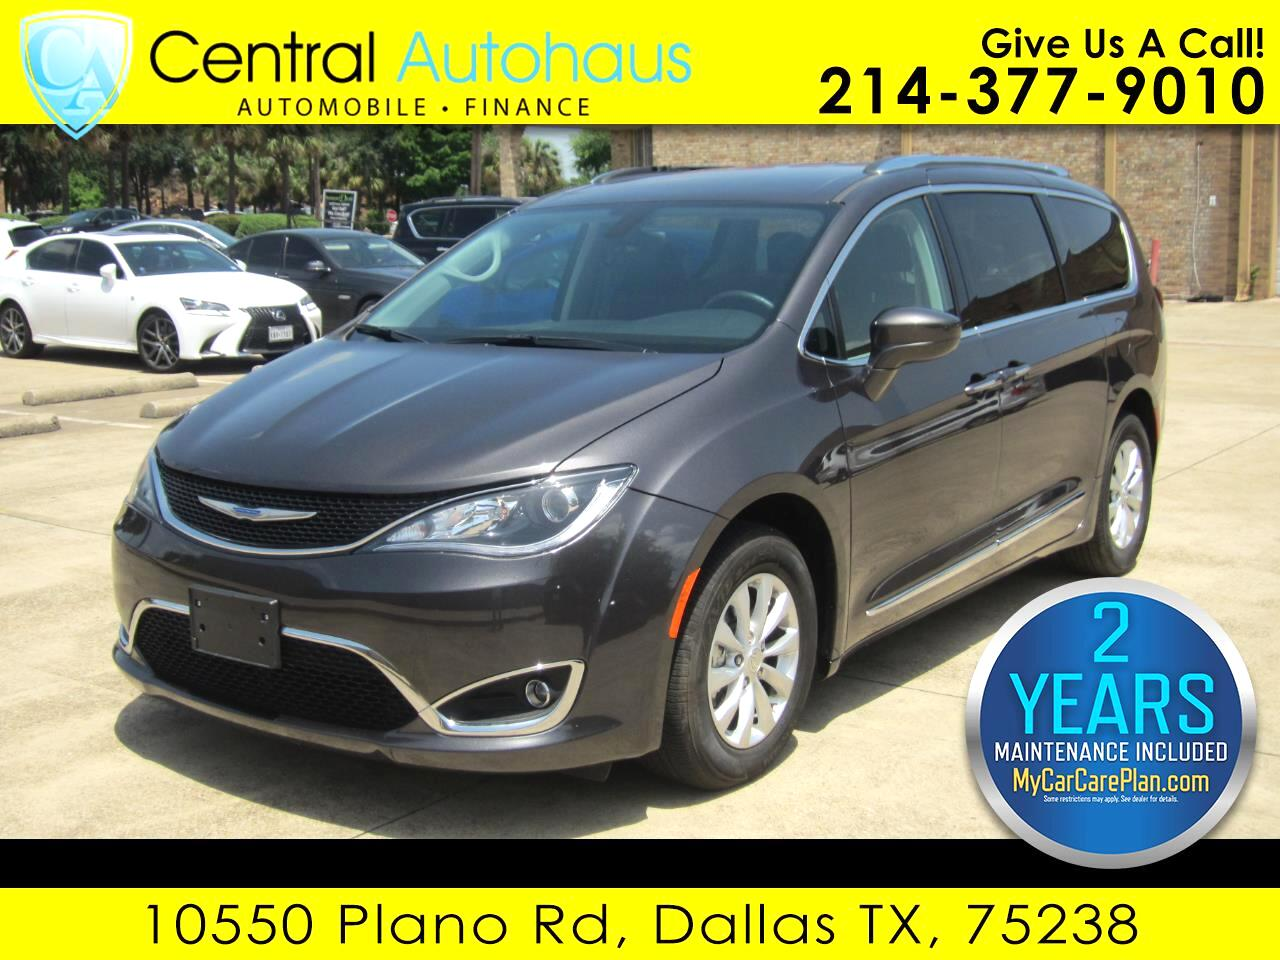 Cars For Sale By Owner In Dallas Tx >> Used Cars For Sale Dallas Tx 75238 Central Autohaus Dallas